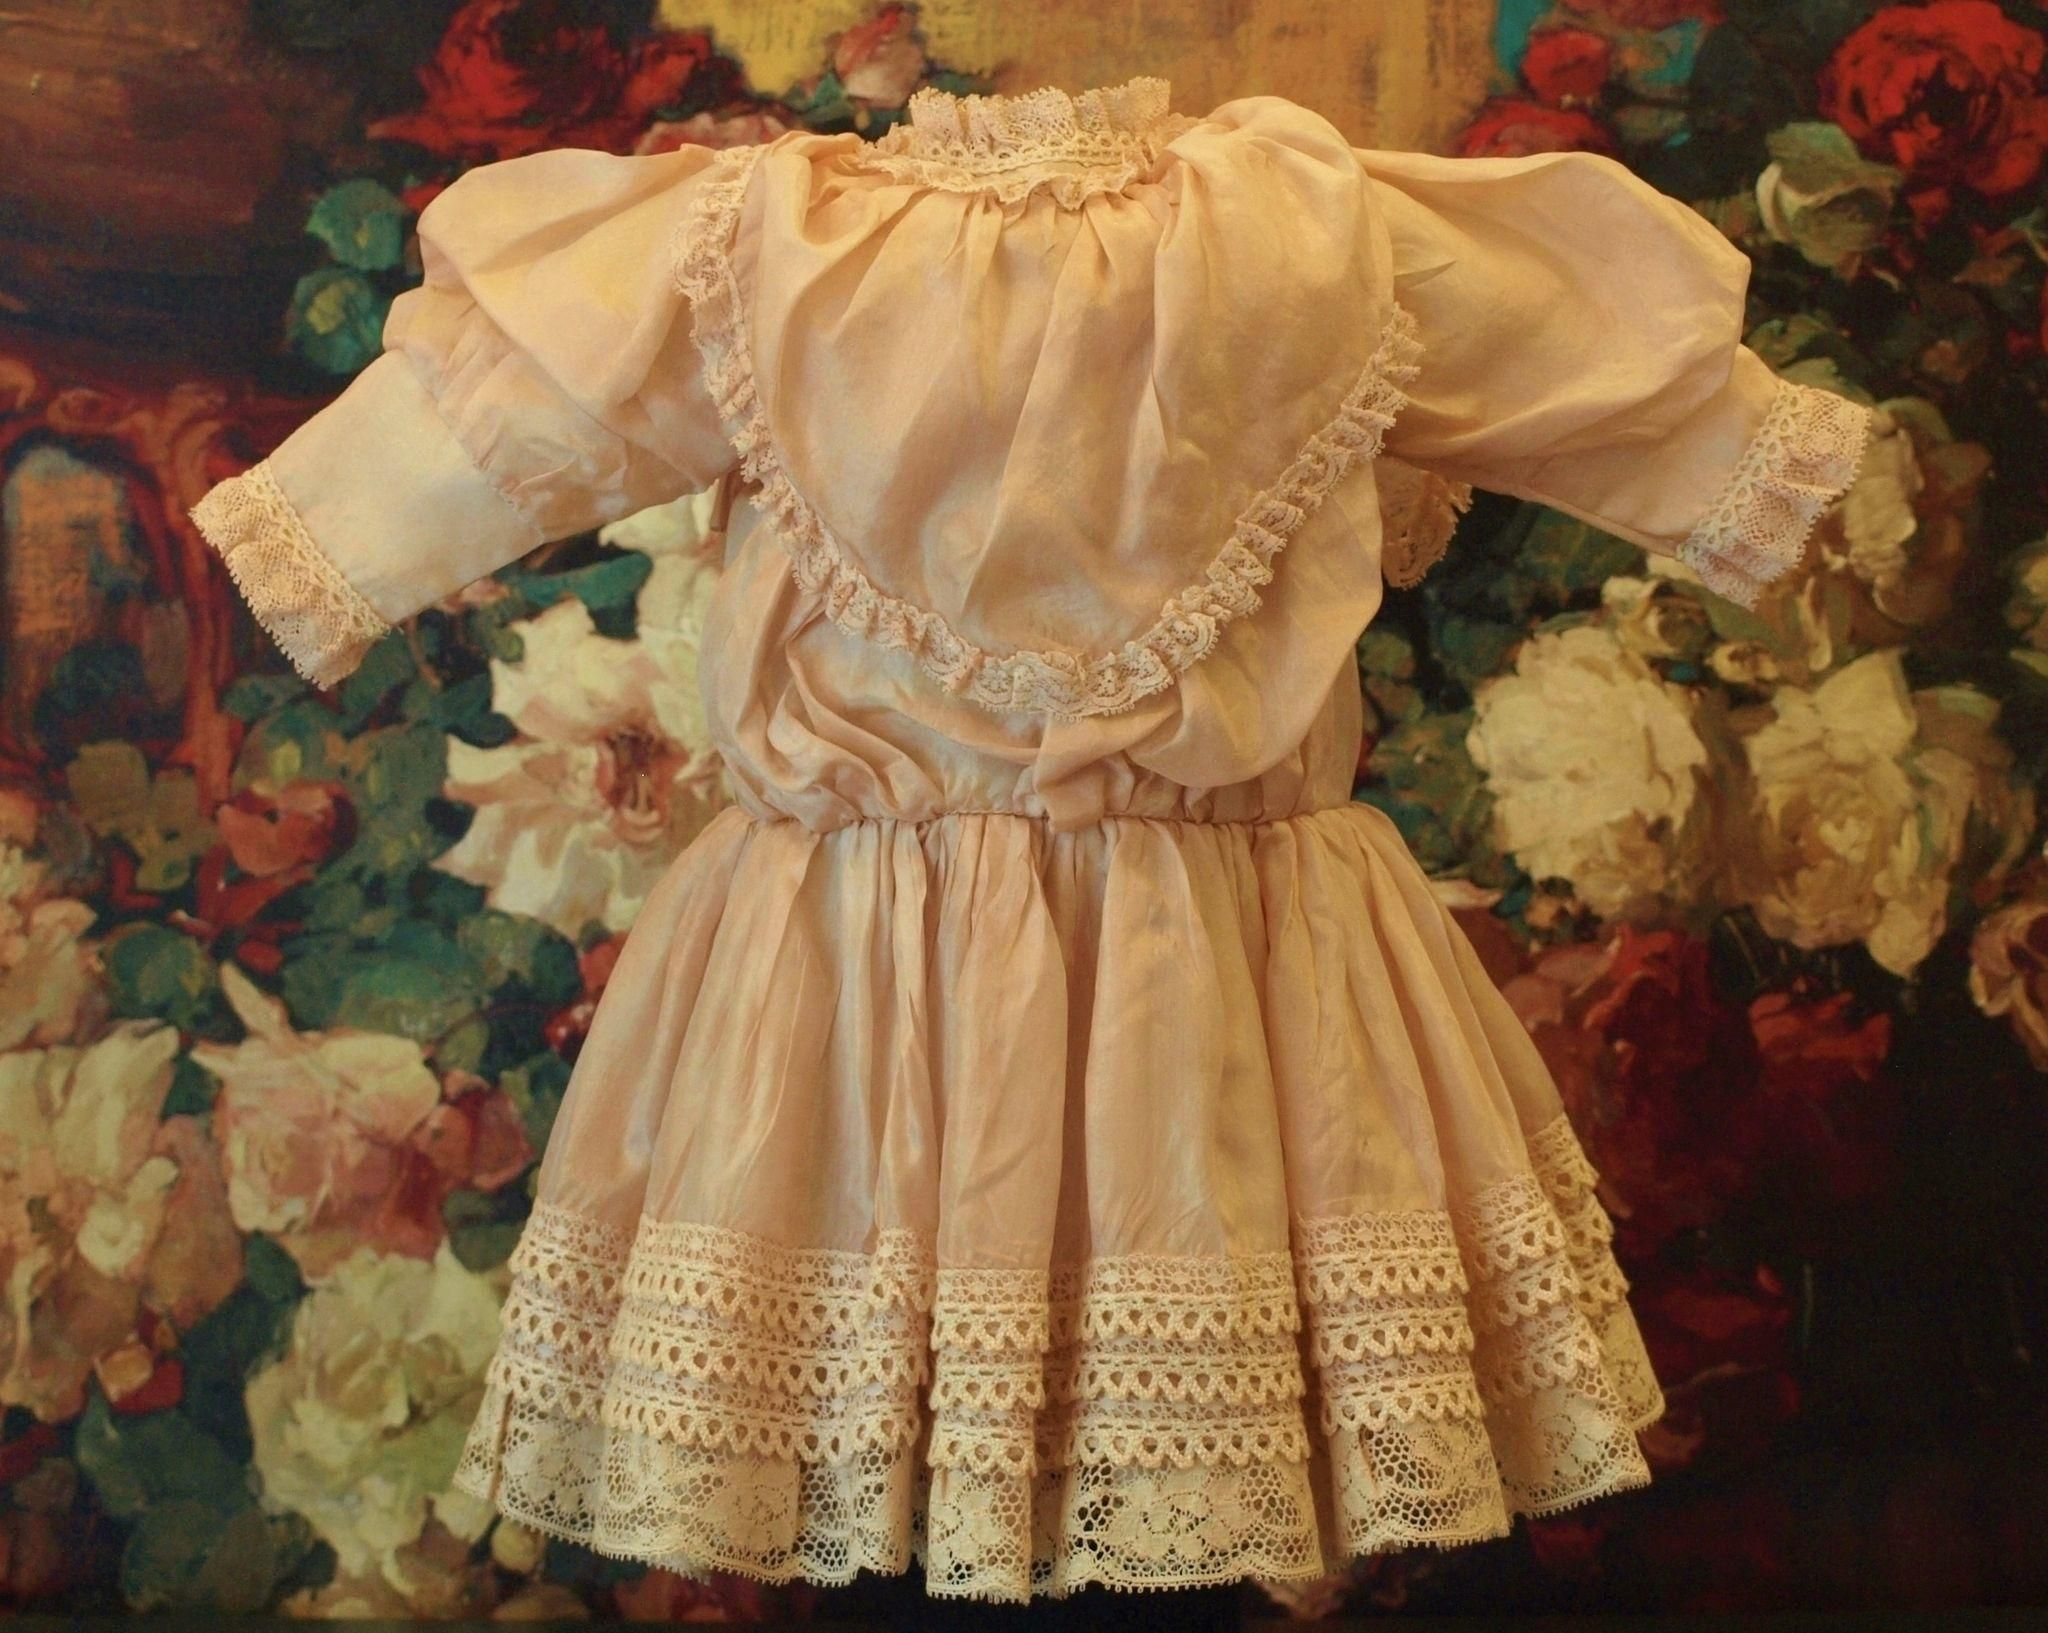 Stunning Soft Silk and Lace Dress With A Light Variation Of Pink -Just Beautiful for the French or German Doll